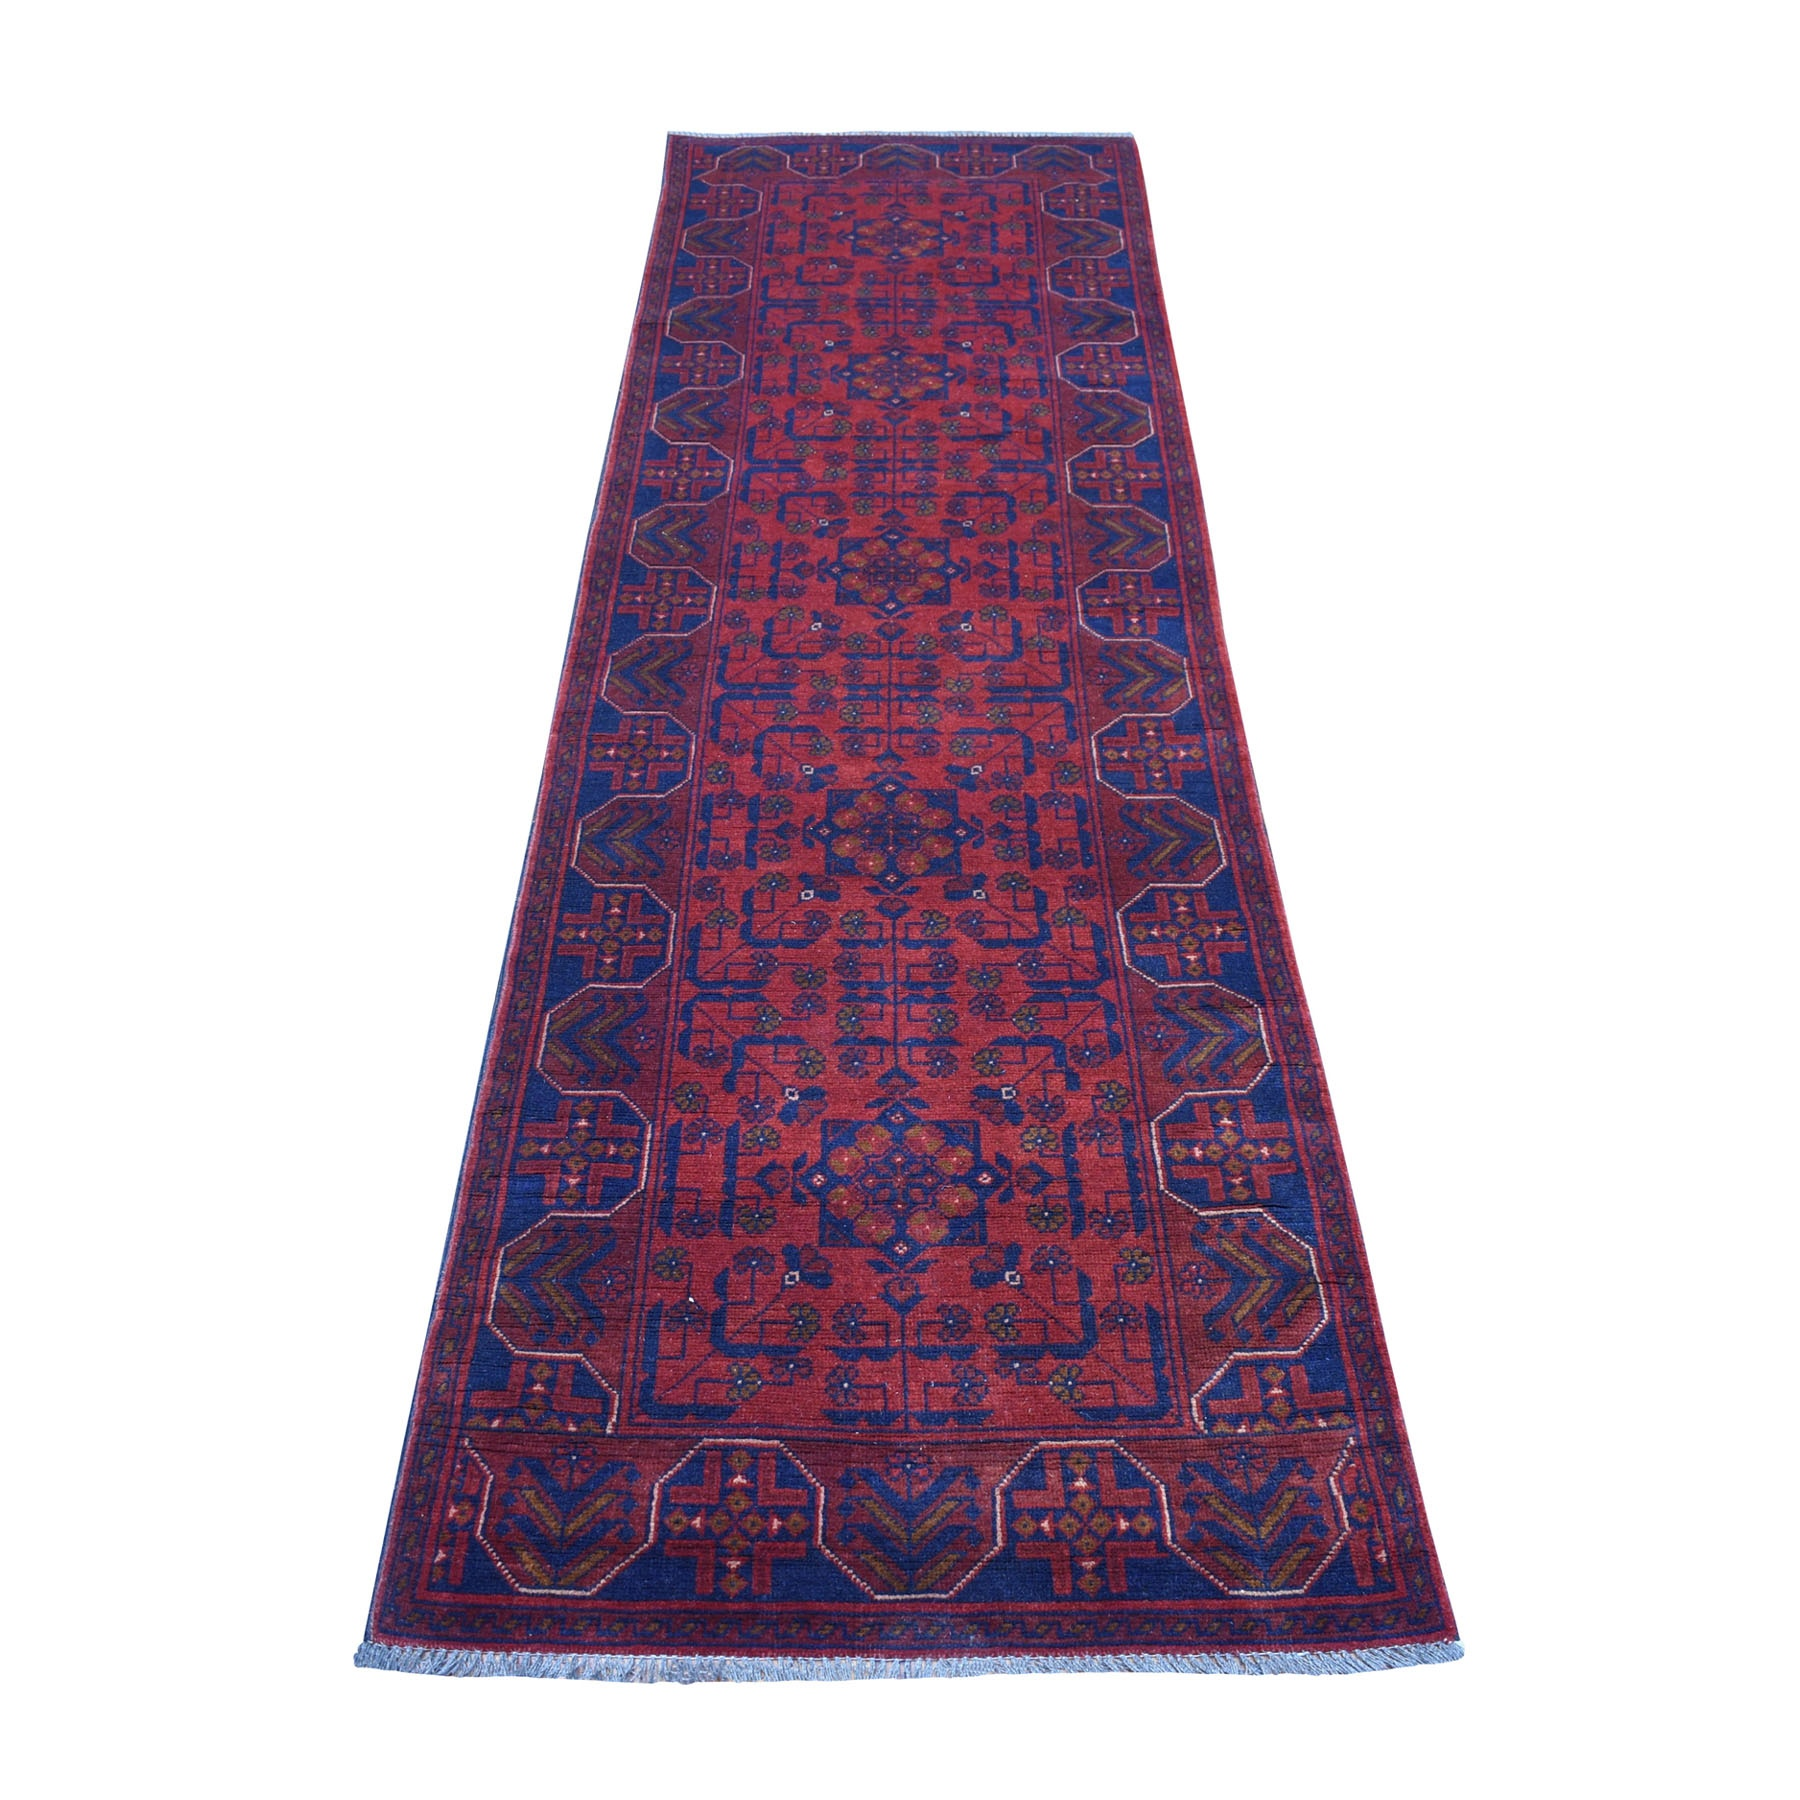 """2'8""""x9'8"""" Deep and Saturated Red Geometric Afghan Andkhoy Runner Pure Wool Hand Knotted Oriental Rug"""